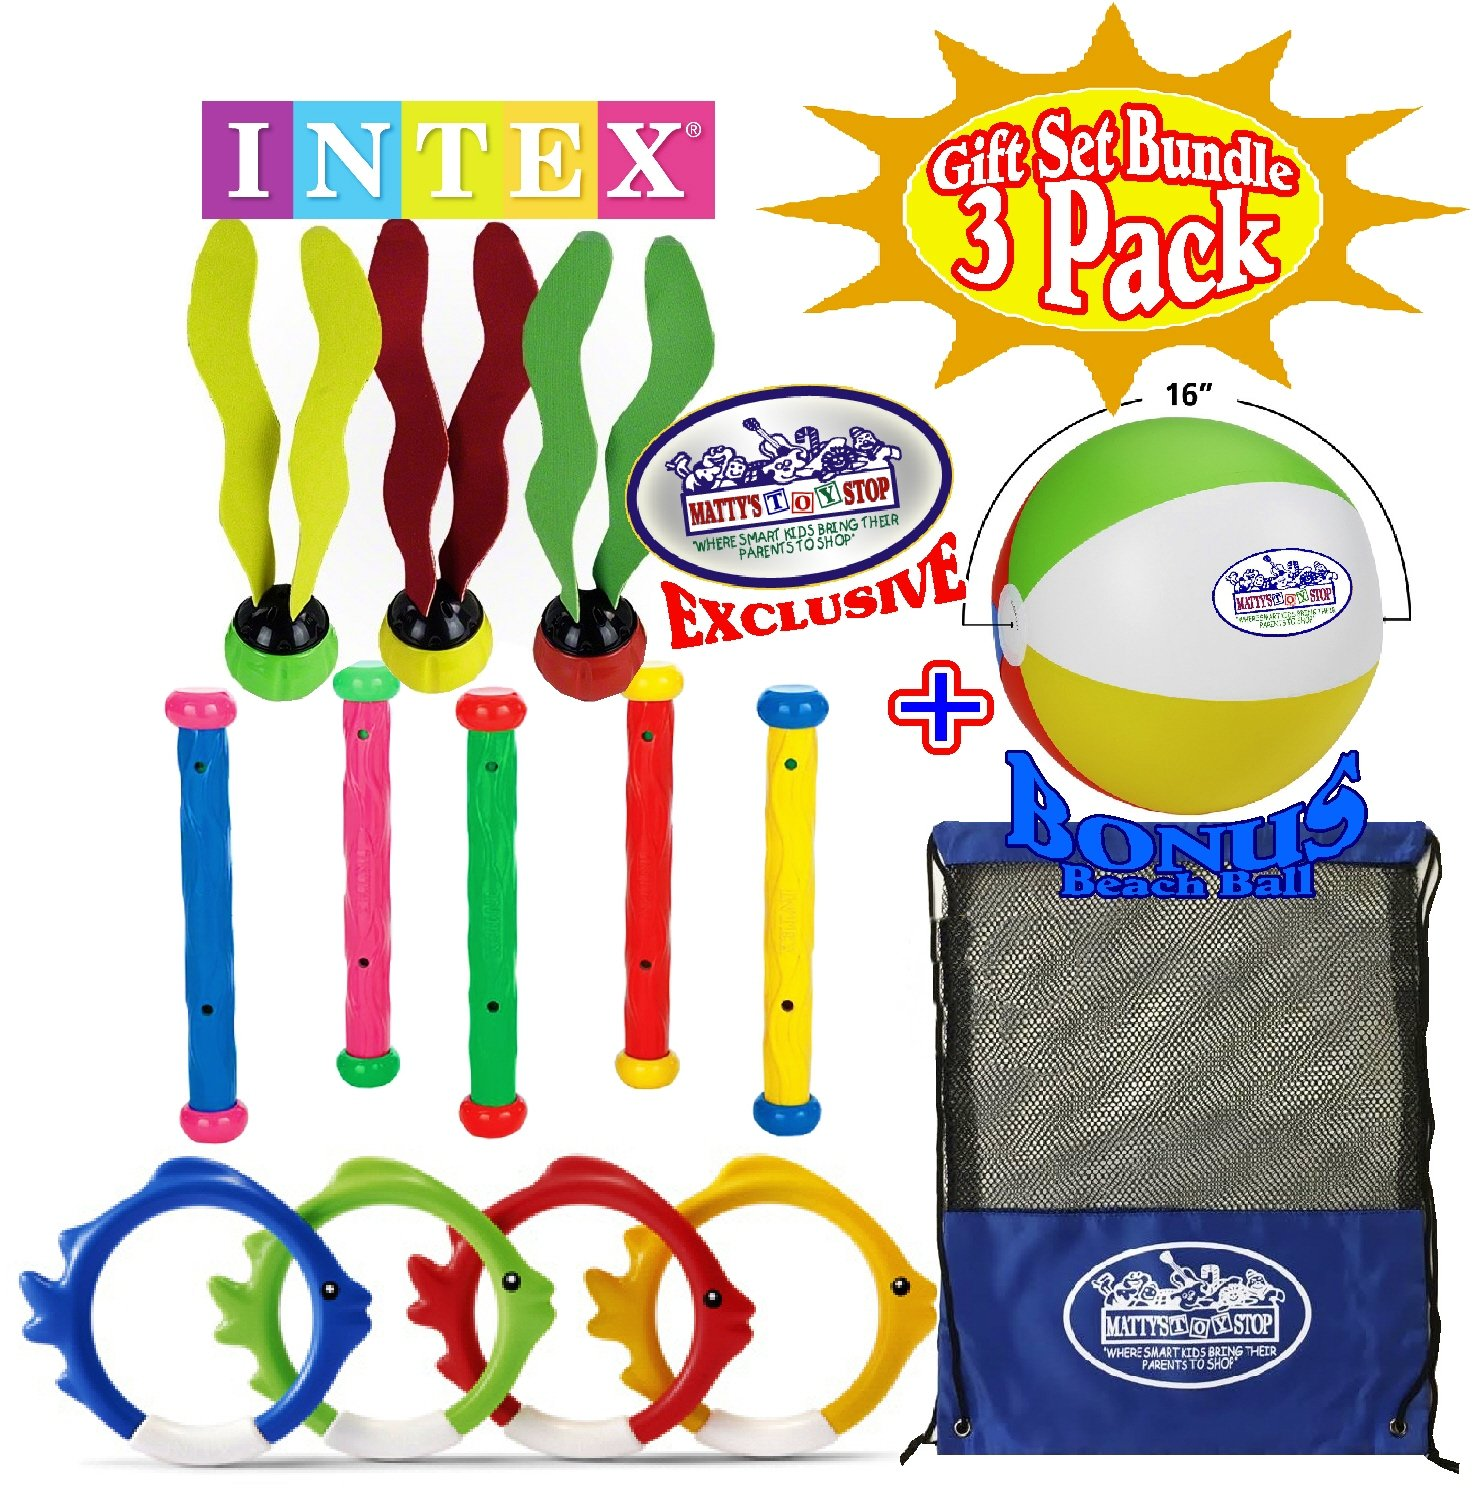 Intex Deluxe Underwater Swimming Pool Toy (4 Rings), Diving Sticks (5) Aquatic (3) Gift Set with Bonus Matty's Toy Stop 16'' Beach Ball and Mesh Storage Bag-3 Pack